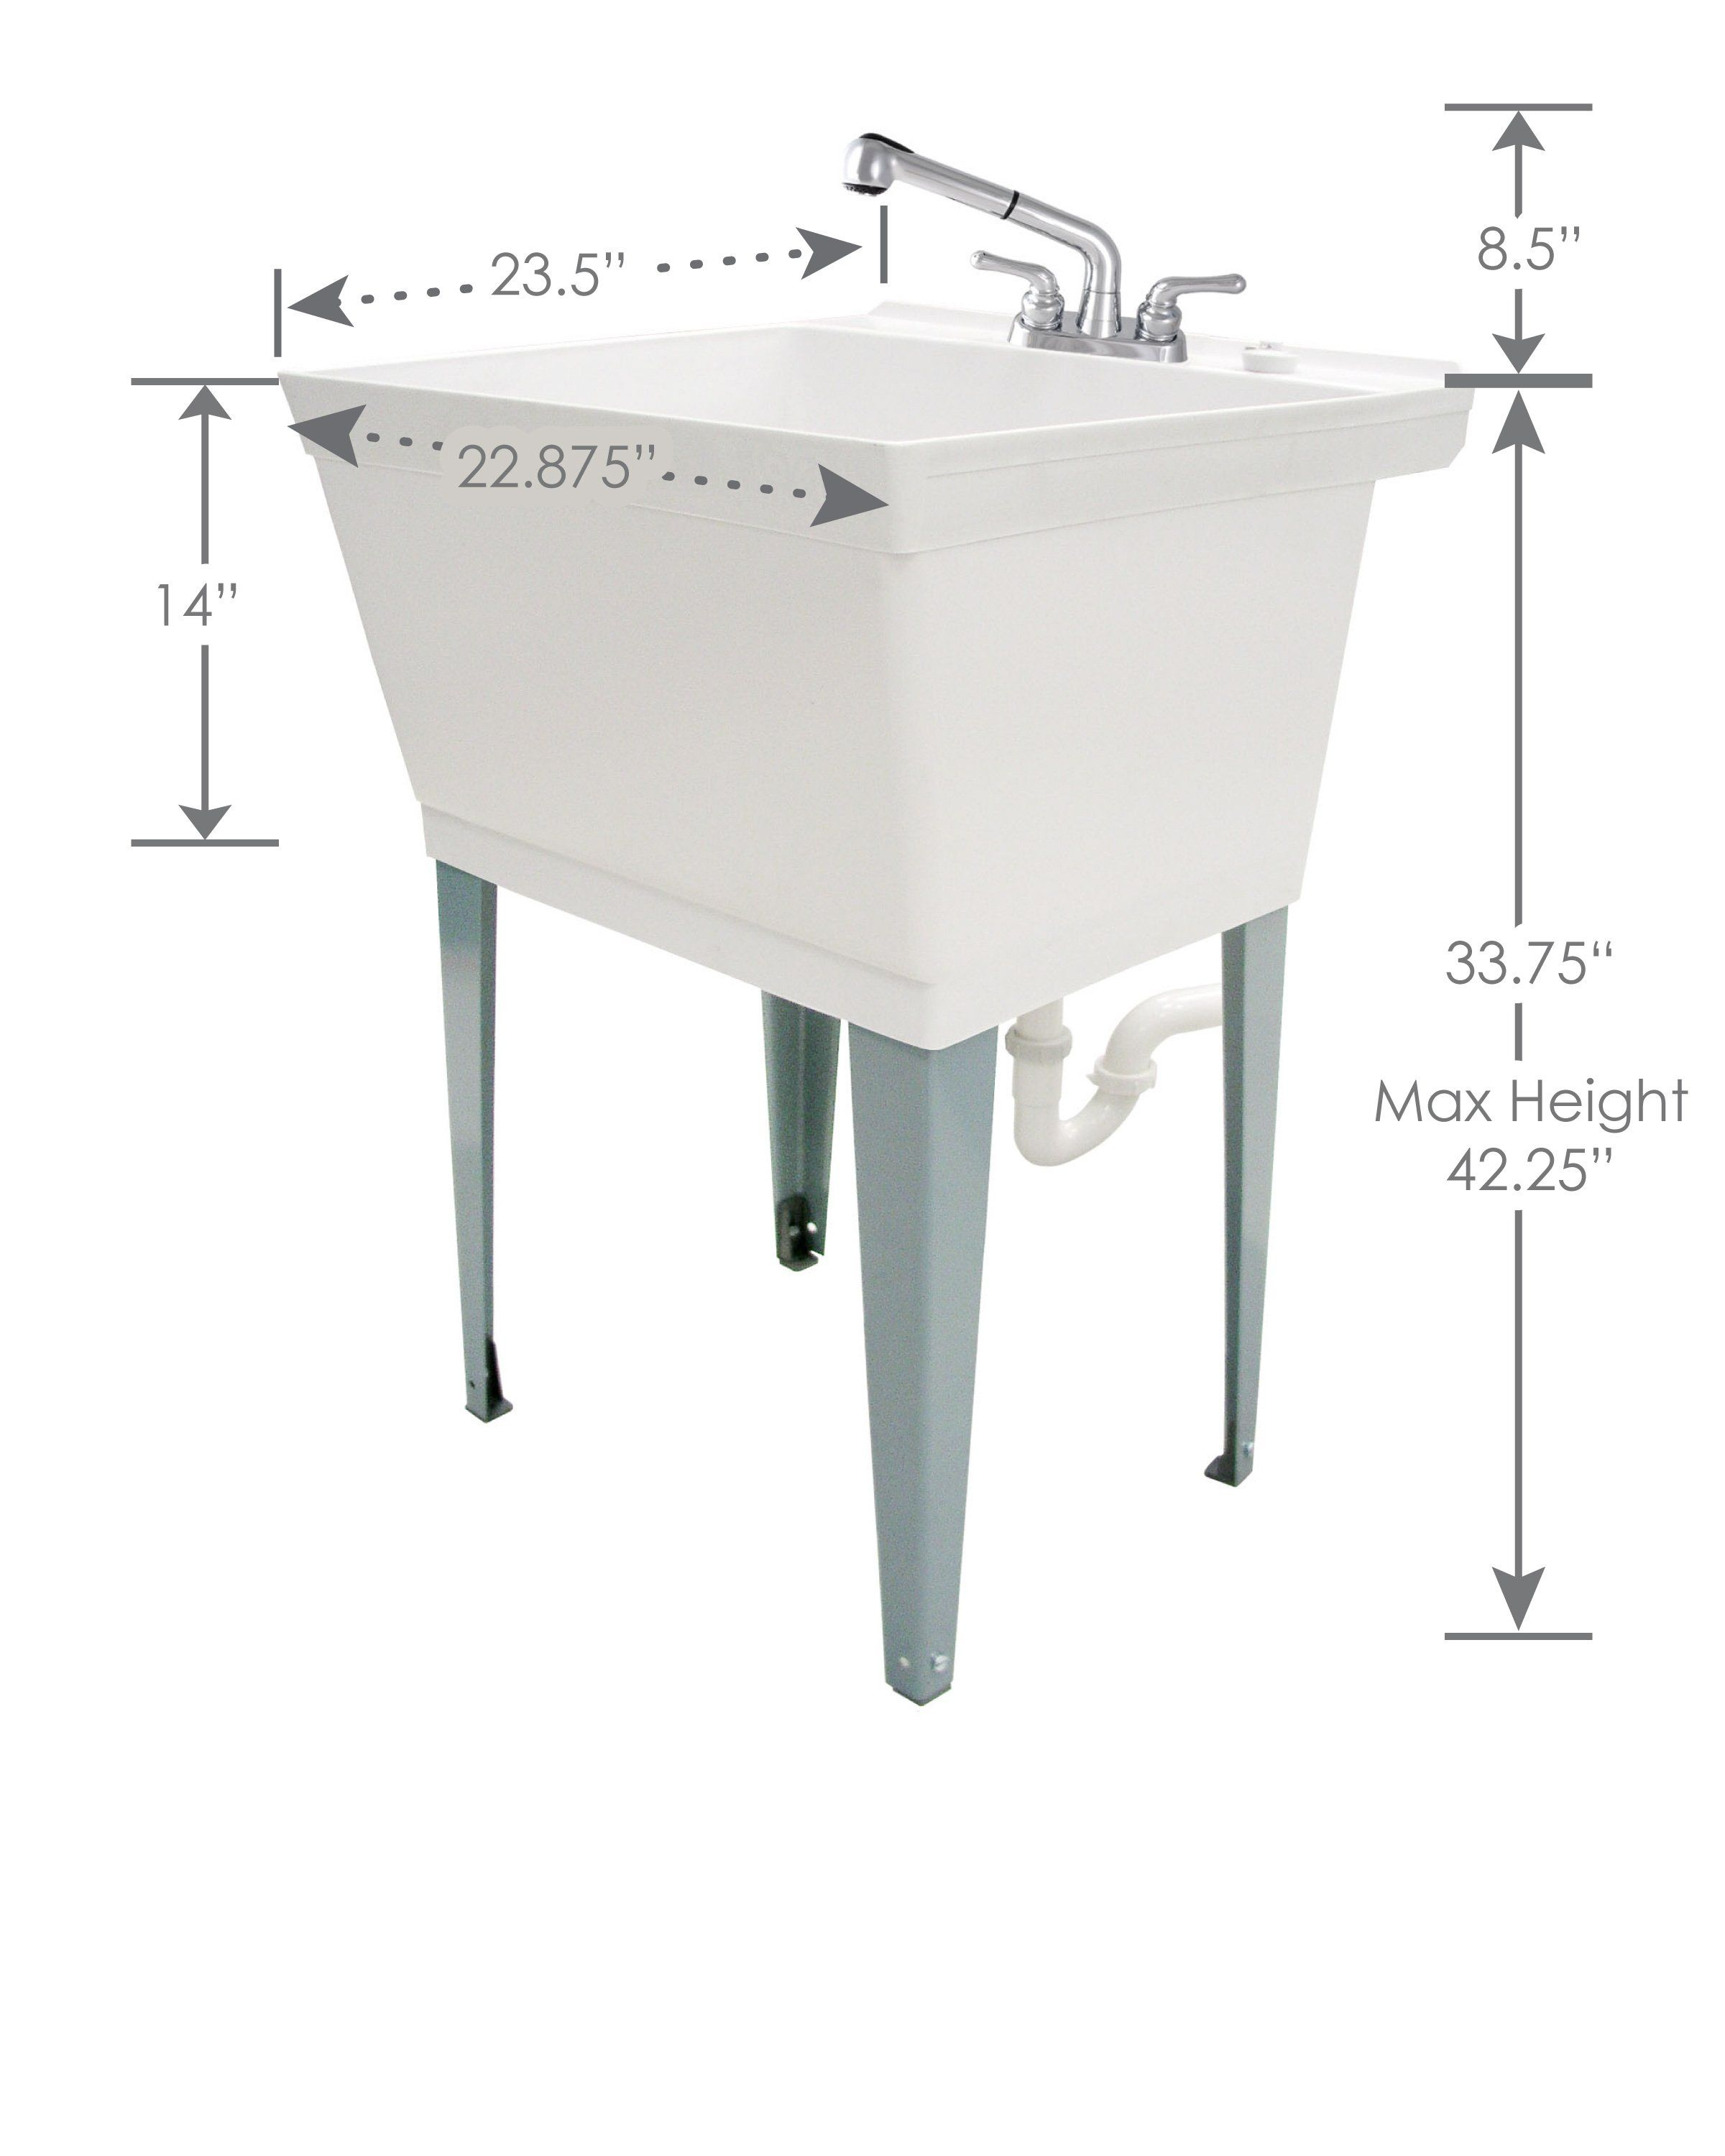 19 Gallon White Laundry Tub With Pull Out Faucet 6000 In 2020